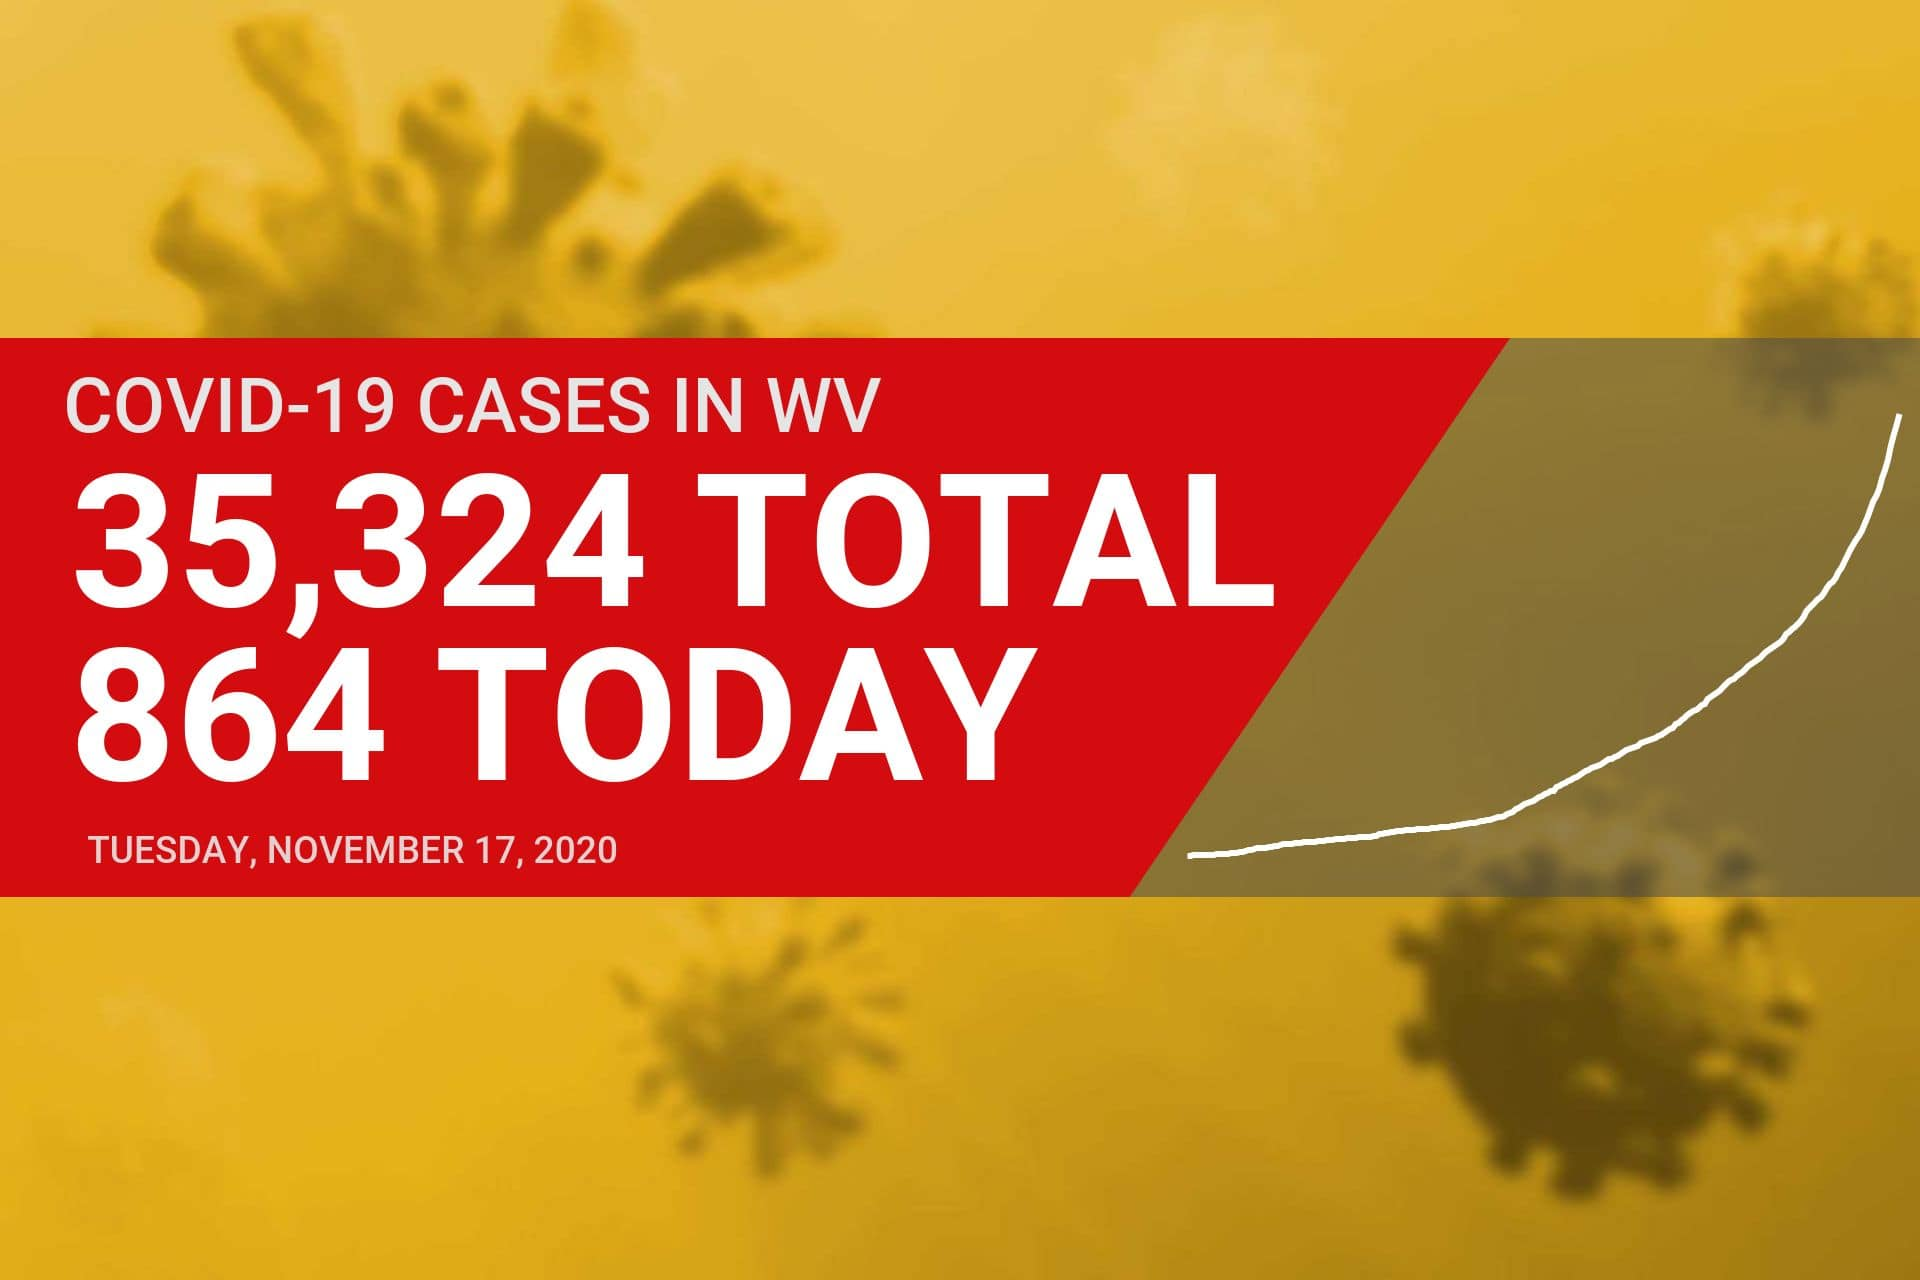 New COVID-19 cases surge in Upshur, Randolph counties on Tuesday